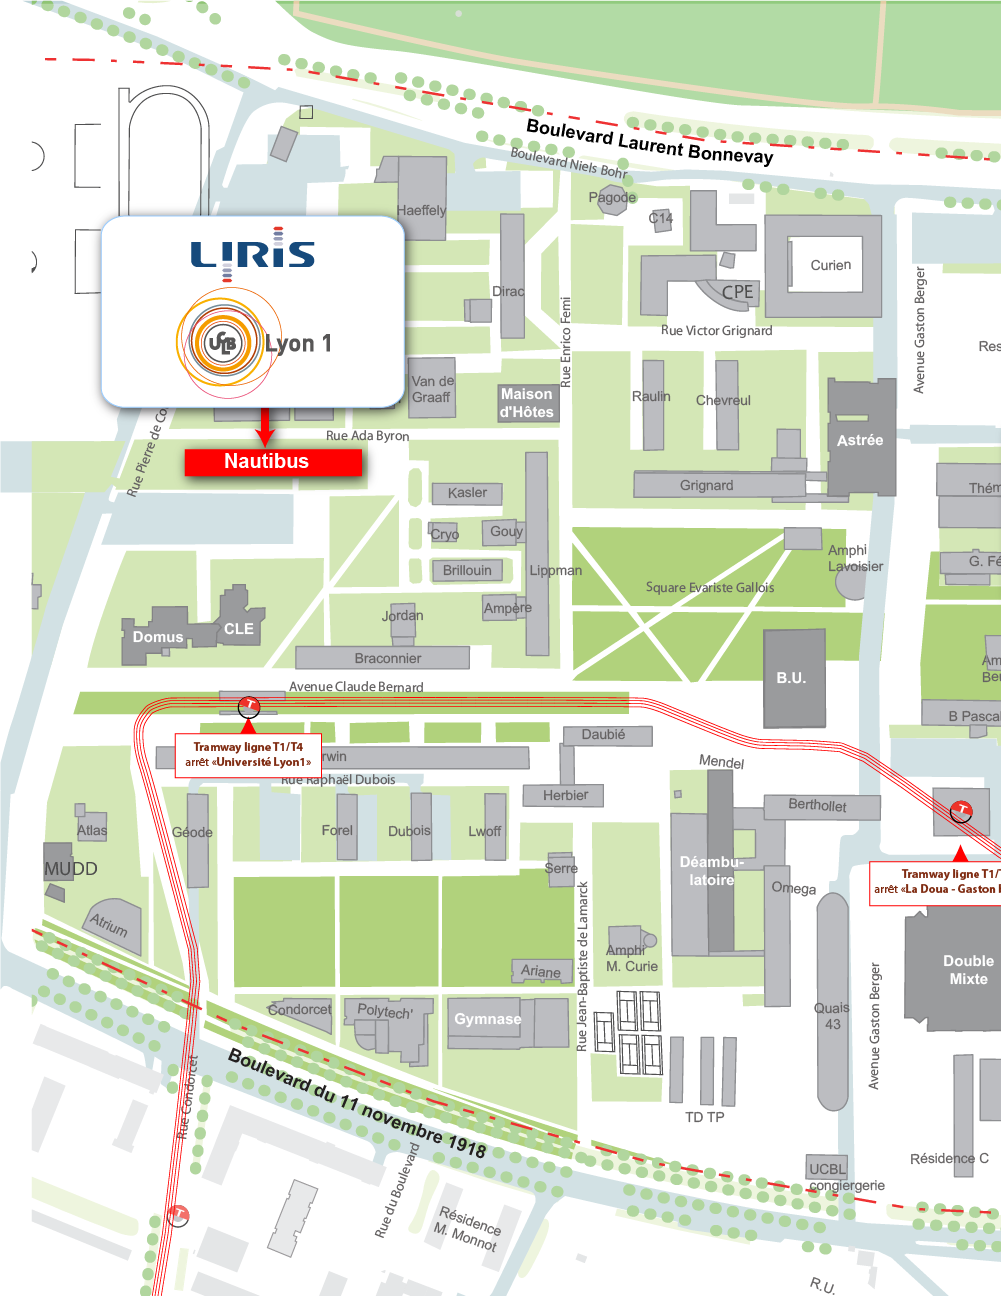 plan_liris_ucbl_campus_ouest_large_0.gif